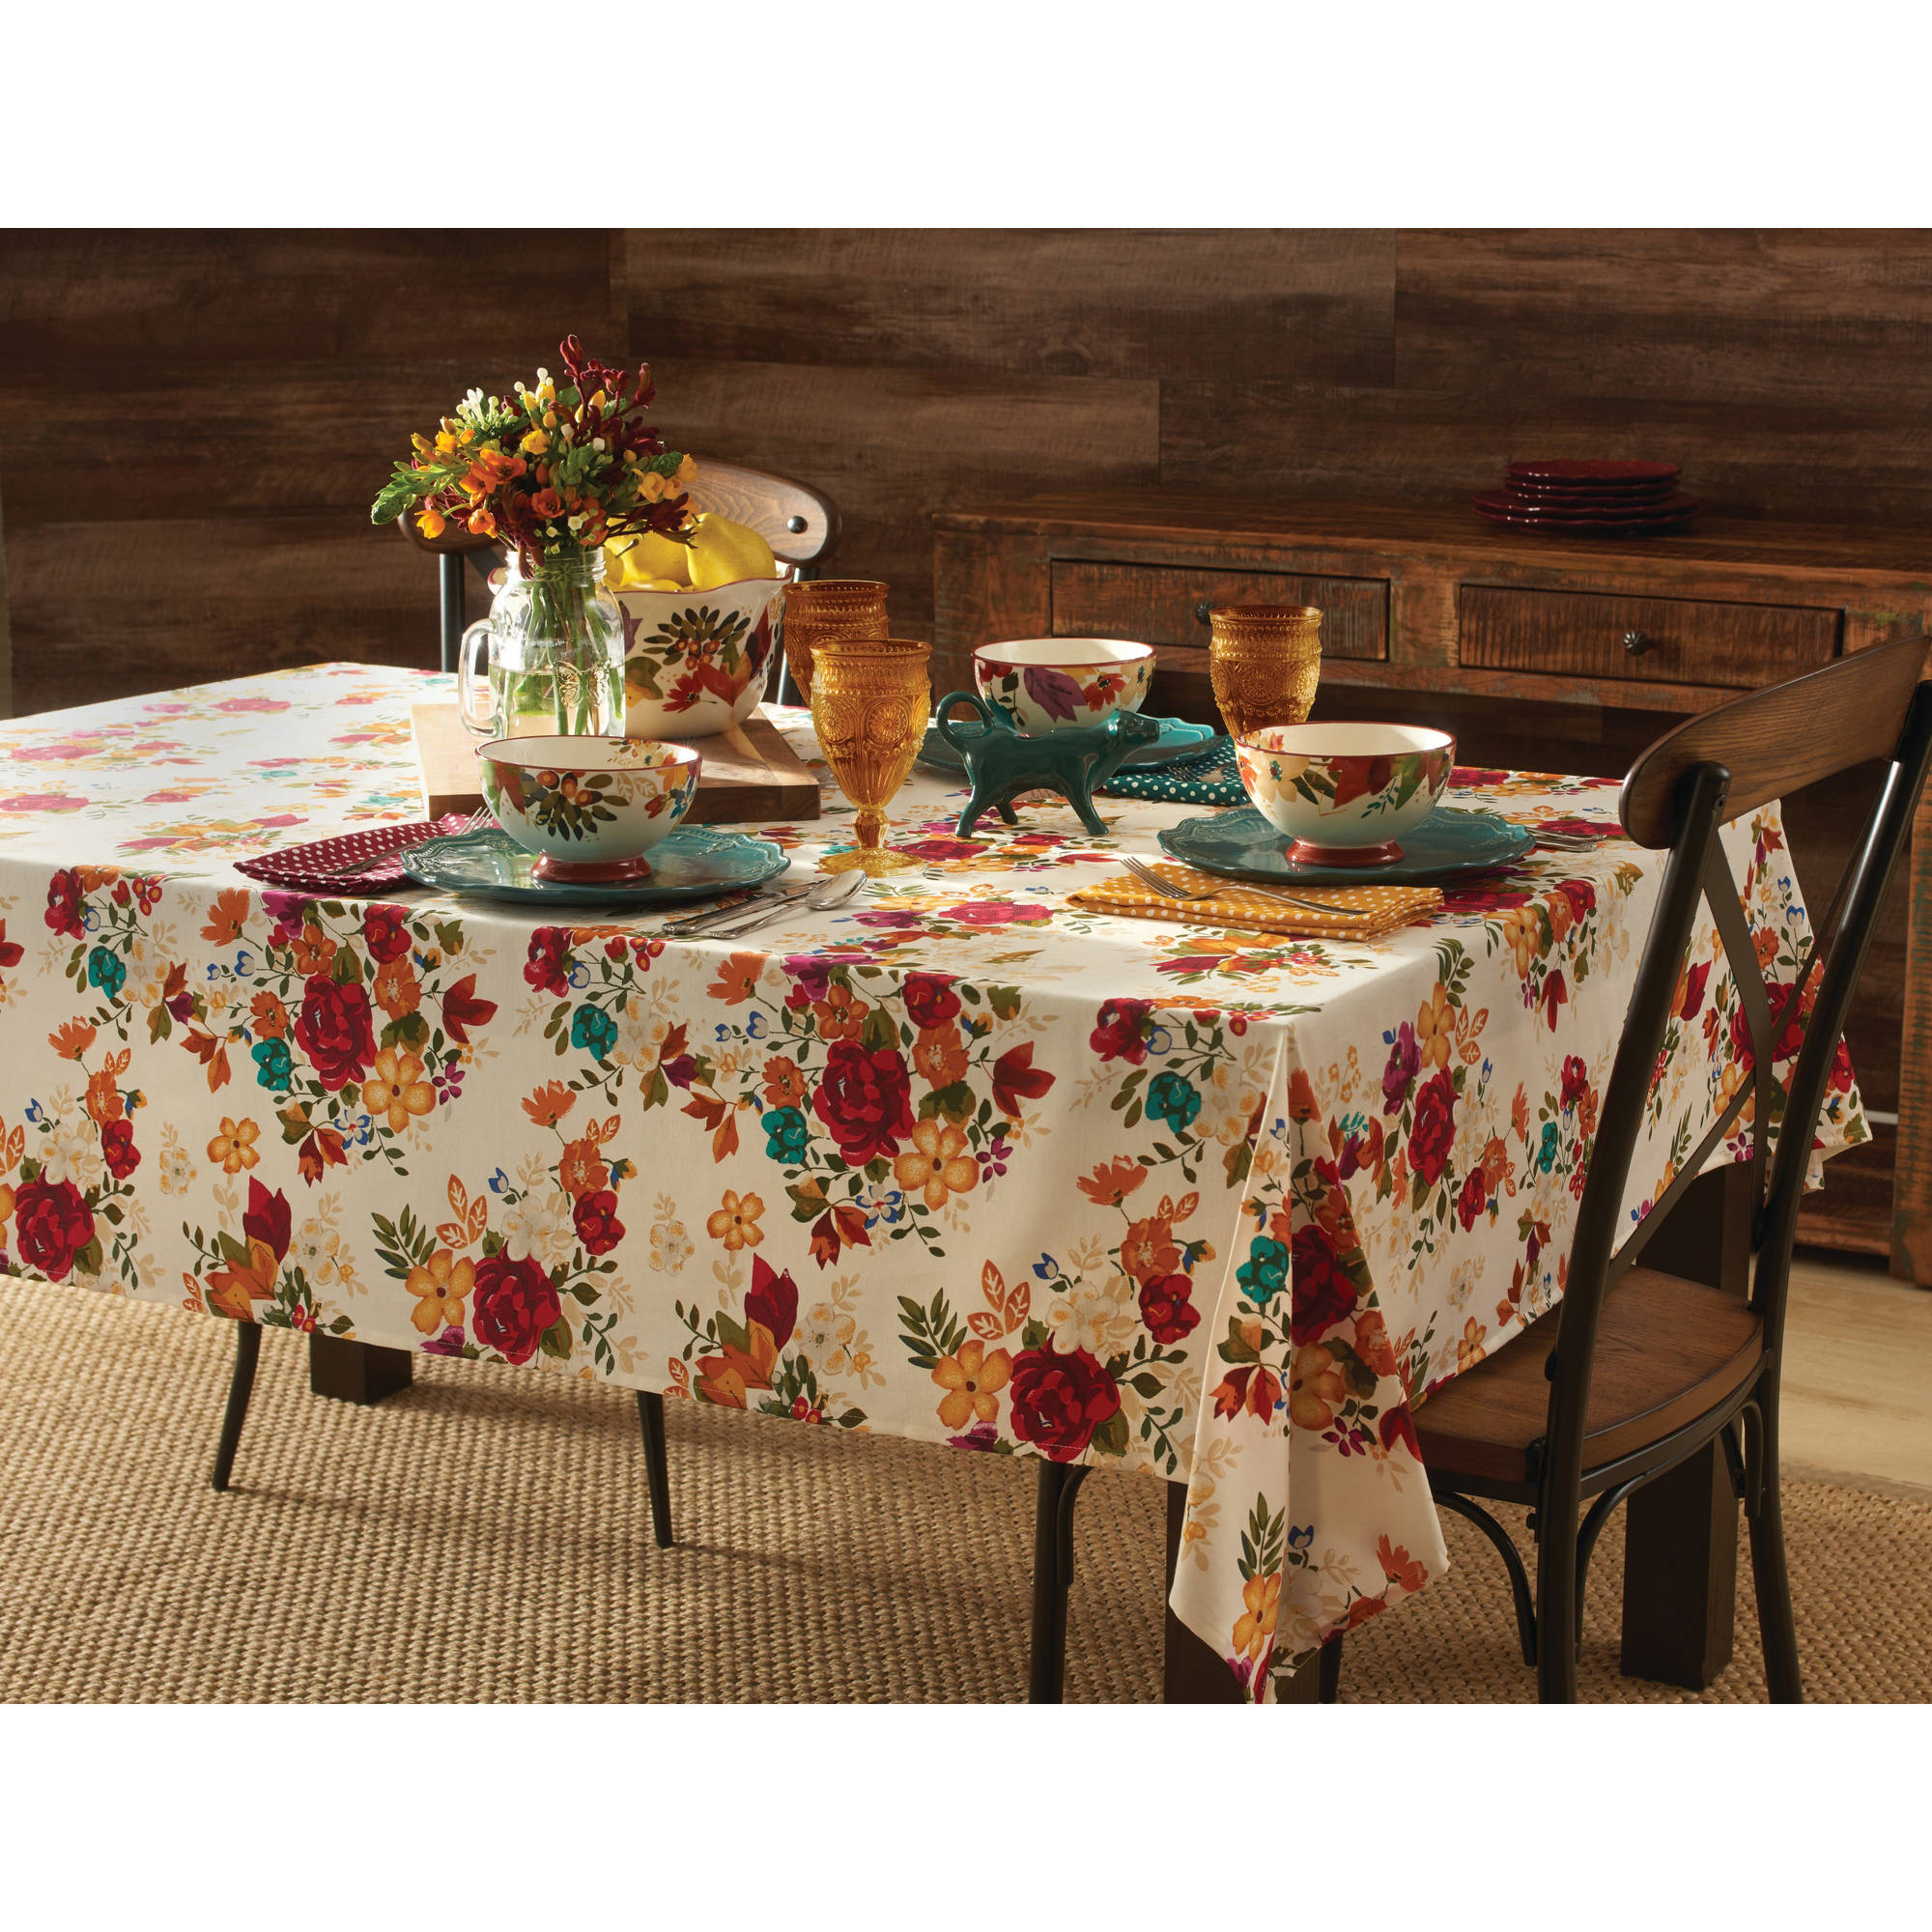 Pioneer Woman Timeless Floral Tablecloth - Walmart.com